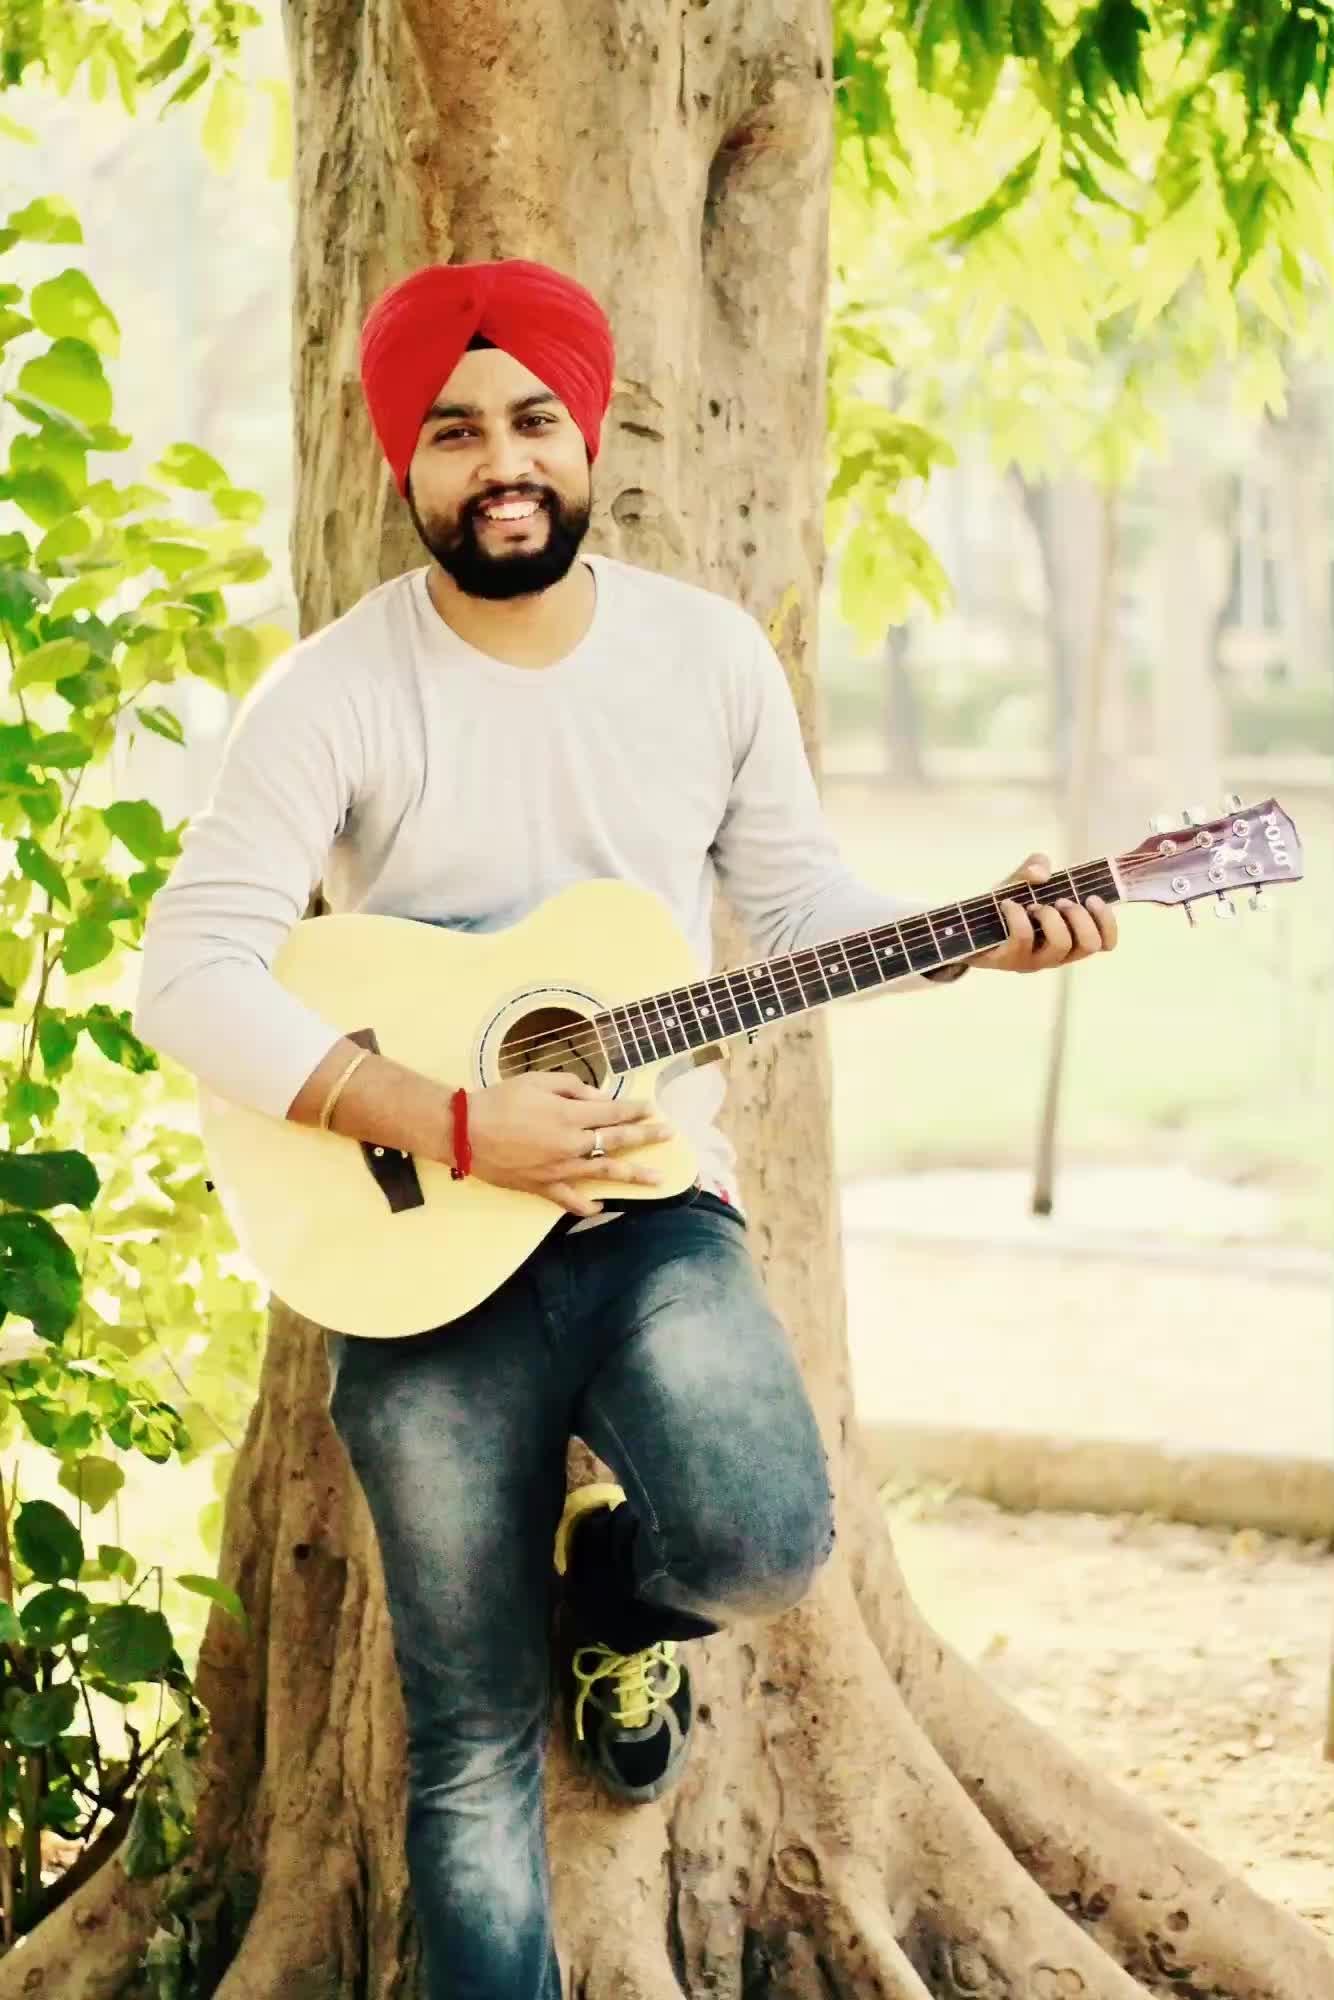 The #Guitar used in the picture is for photography purpose only. I don't know how to play guitar.  #portraitphotography #guitarist #roposo #talenthunt #sikh #beard #parkshoot #followme #newdp #roposotalenthunt #roposostar #roposolove #voteforme #delhiite #youtuber #mrfunjabi